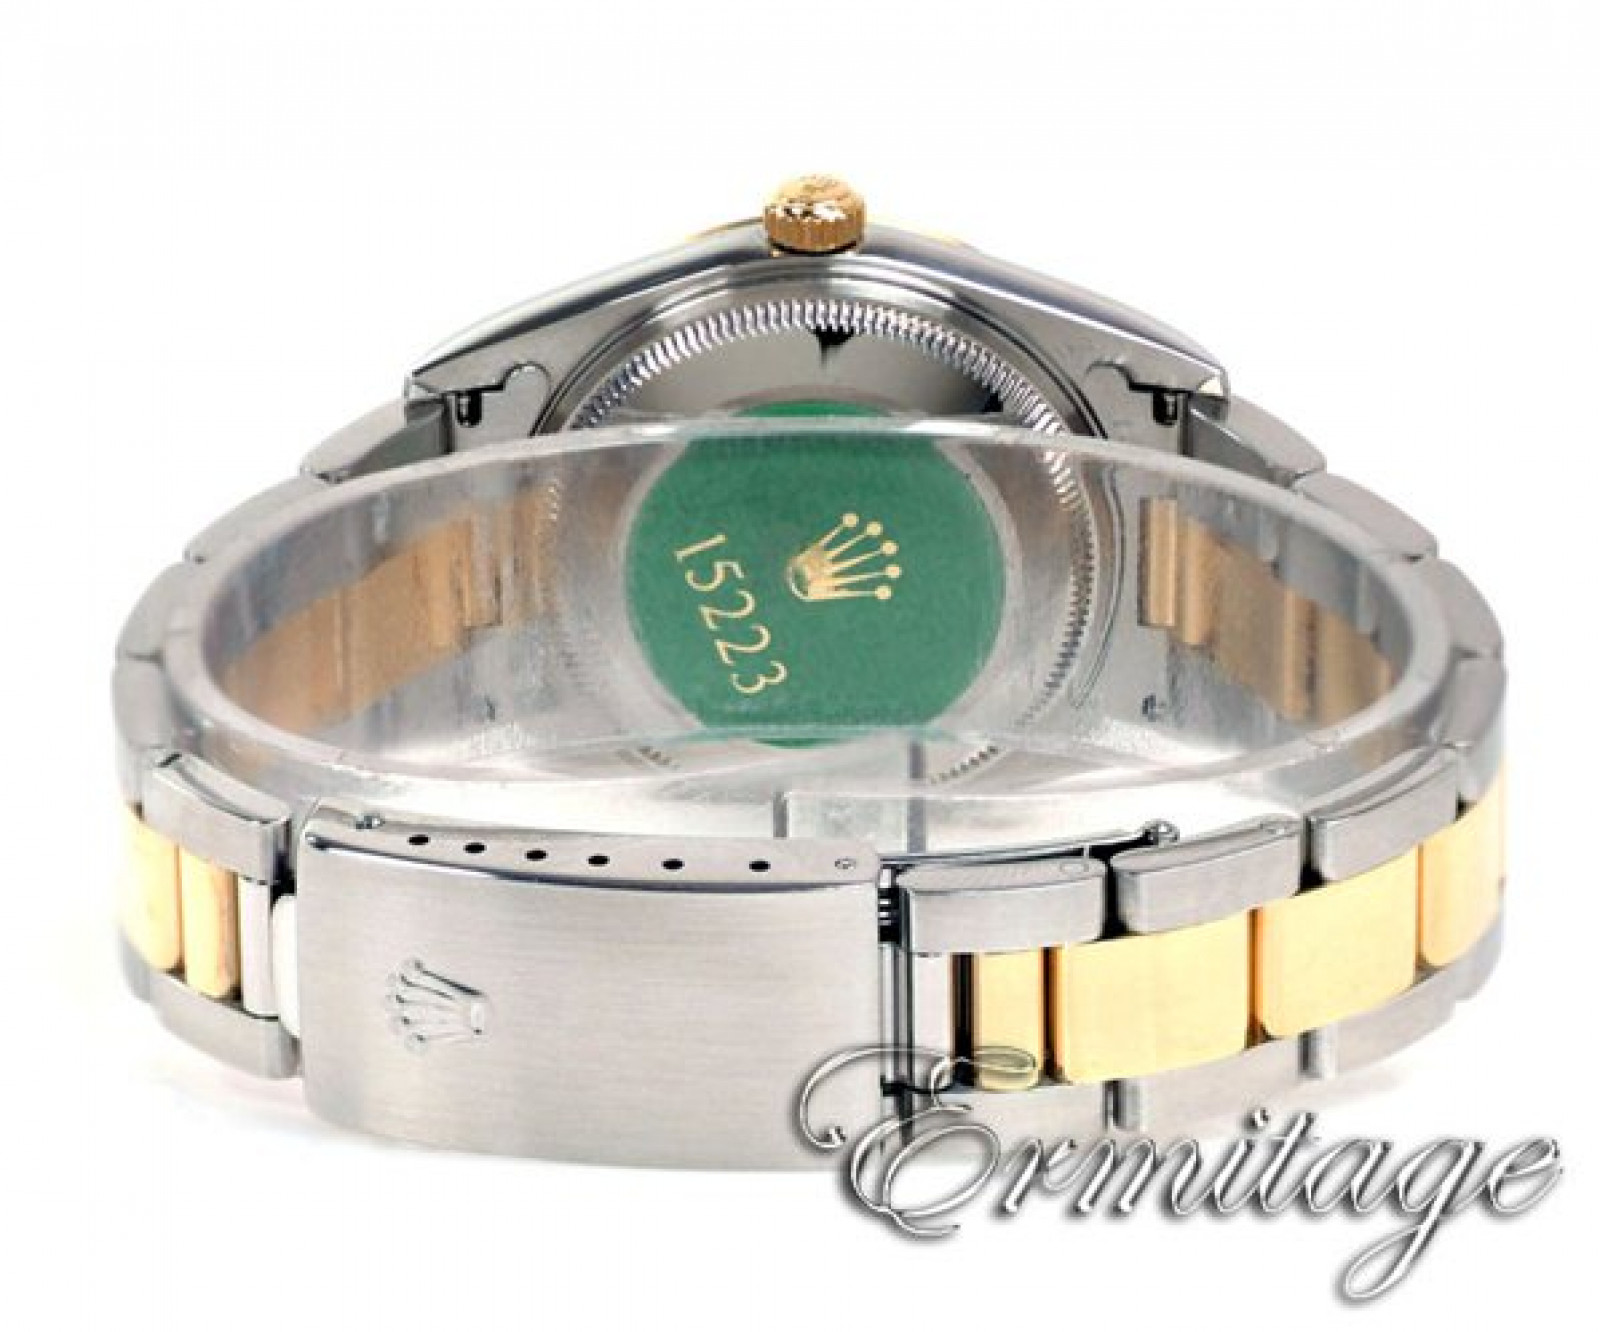 Rolex Oyster Perpetual Date 15223 Gold & Steel